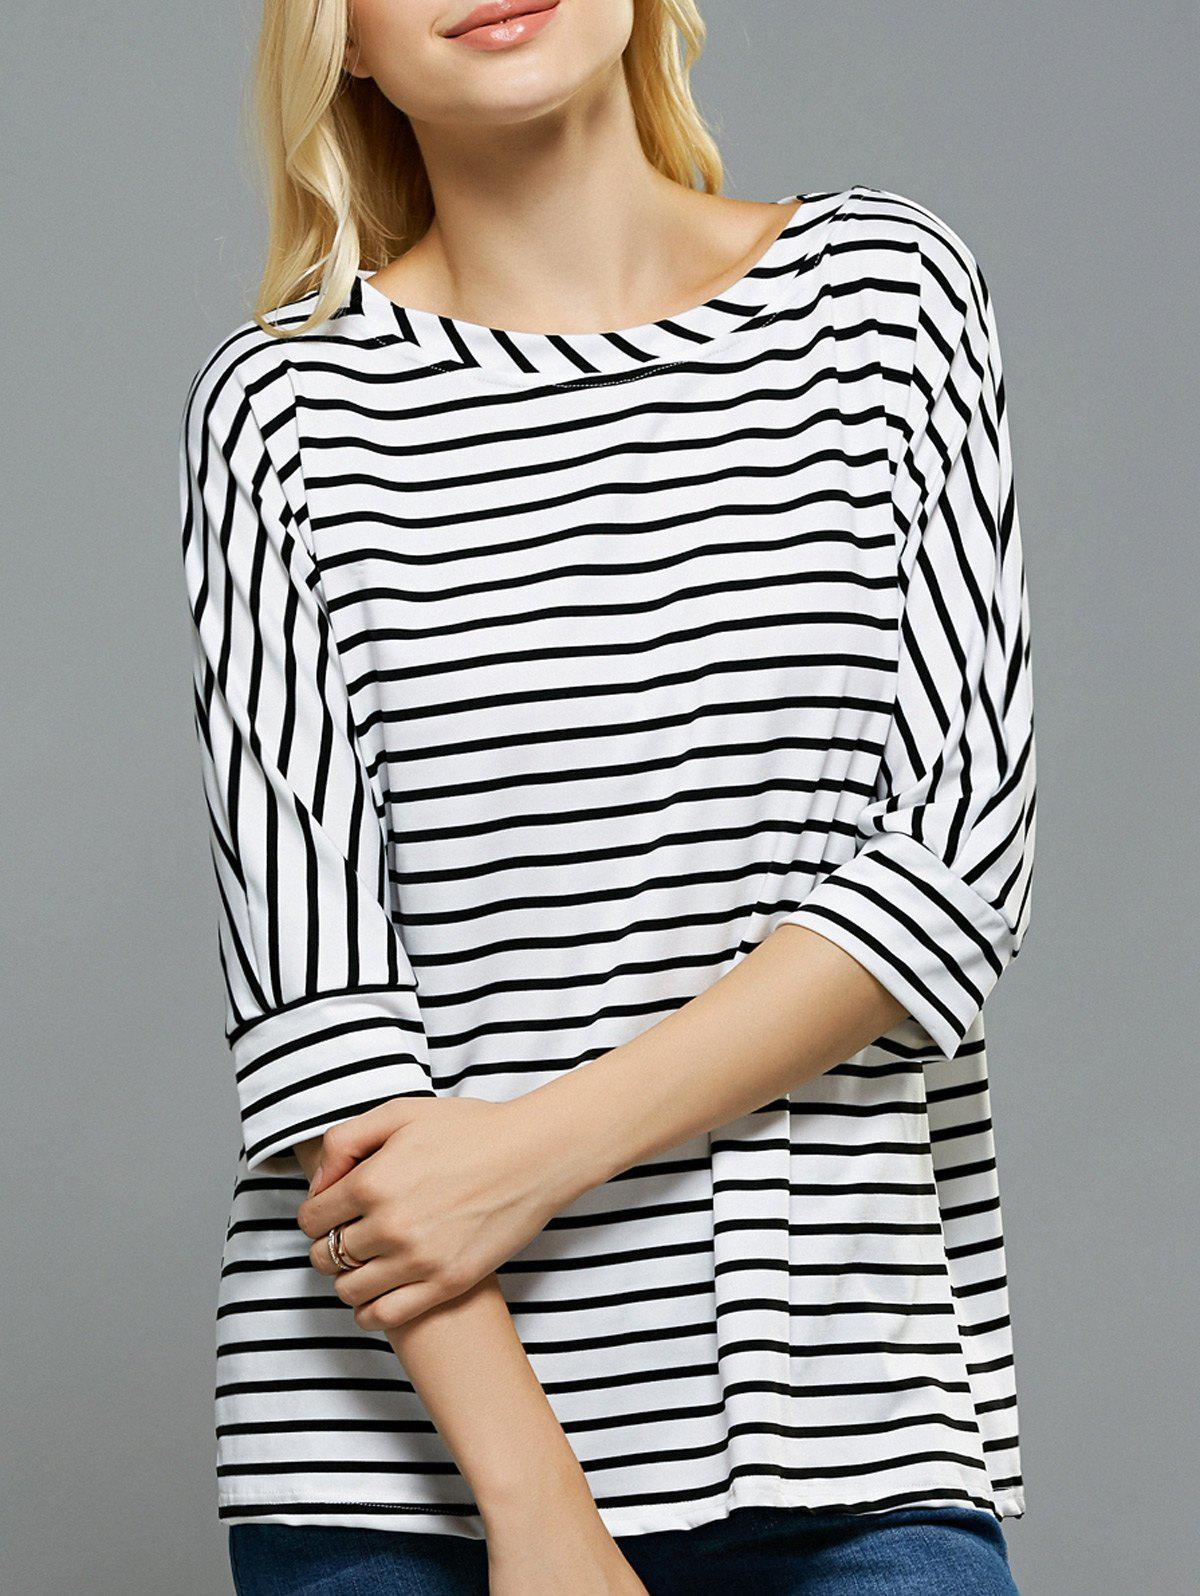 Loose Fitting Dolman Sleeves Striped T-Shirt - STRIPE XL